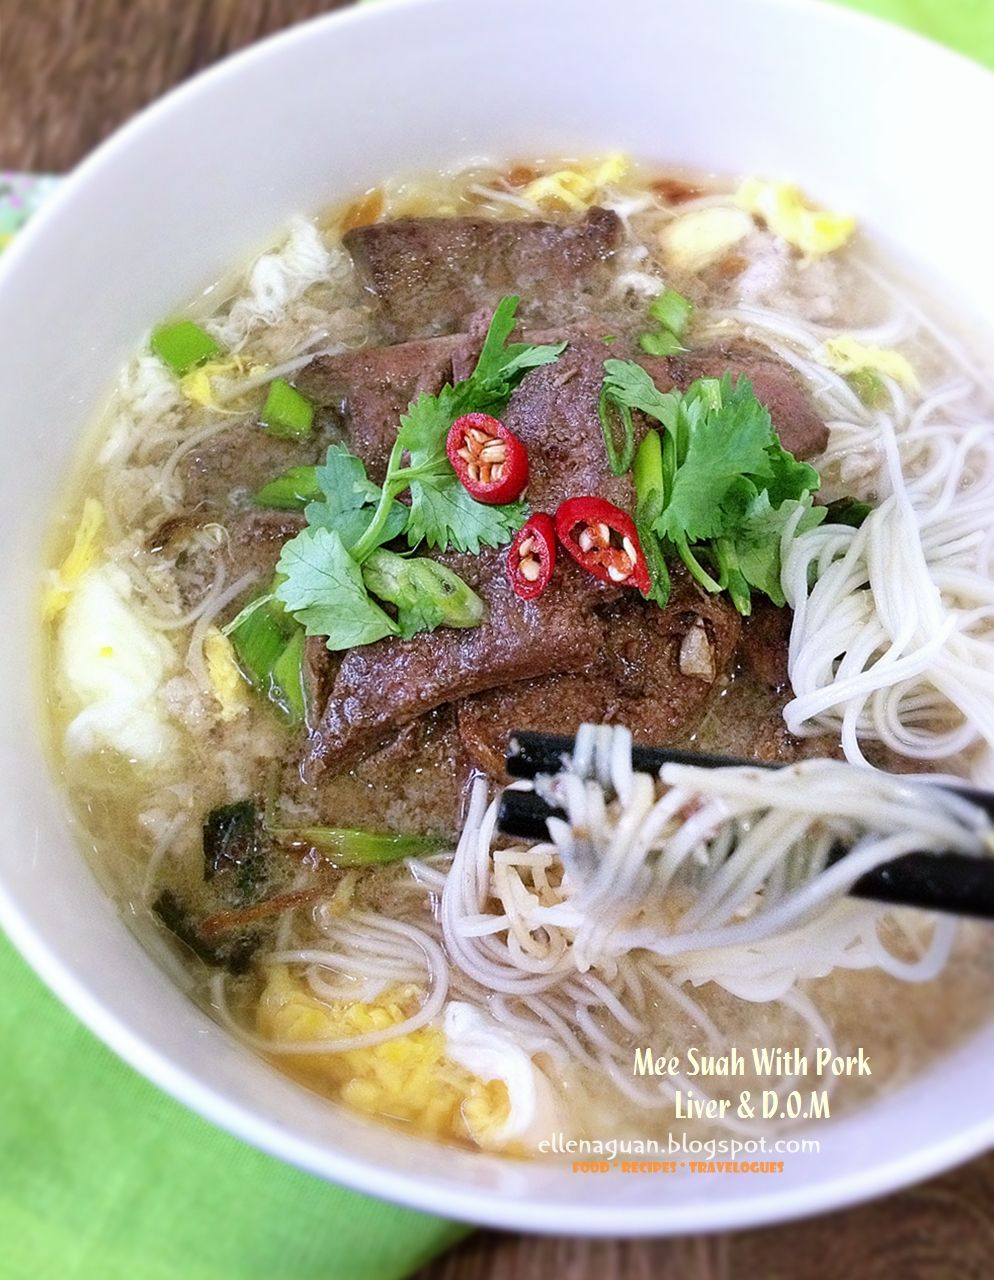 Cuisine paradise singapore food blog recipes reviews and travel food forumfinder Image collections